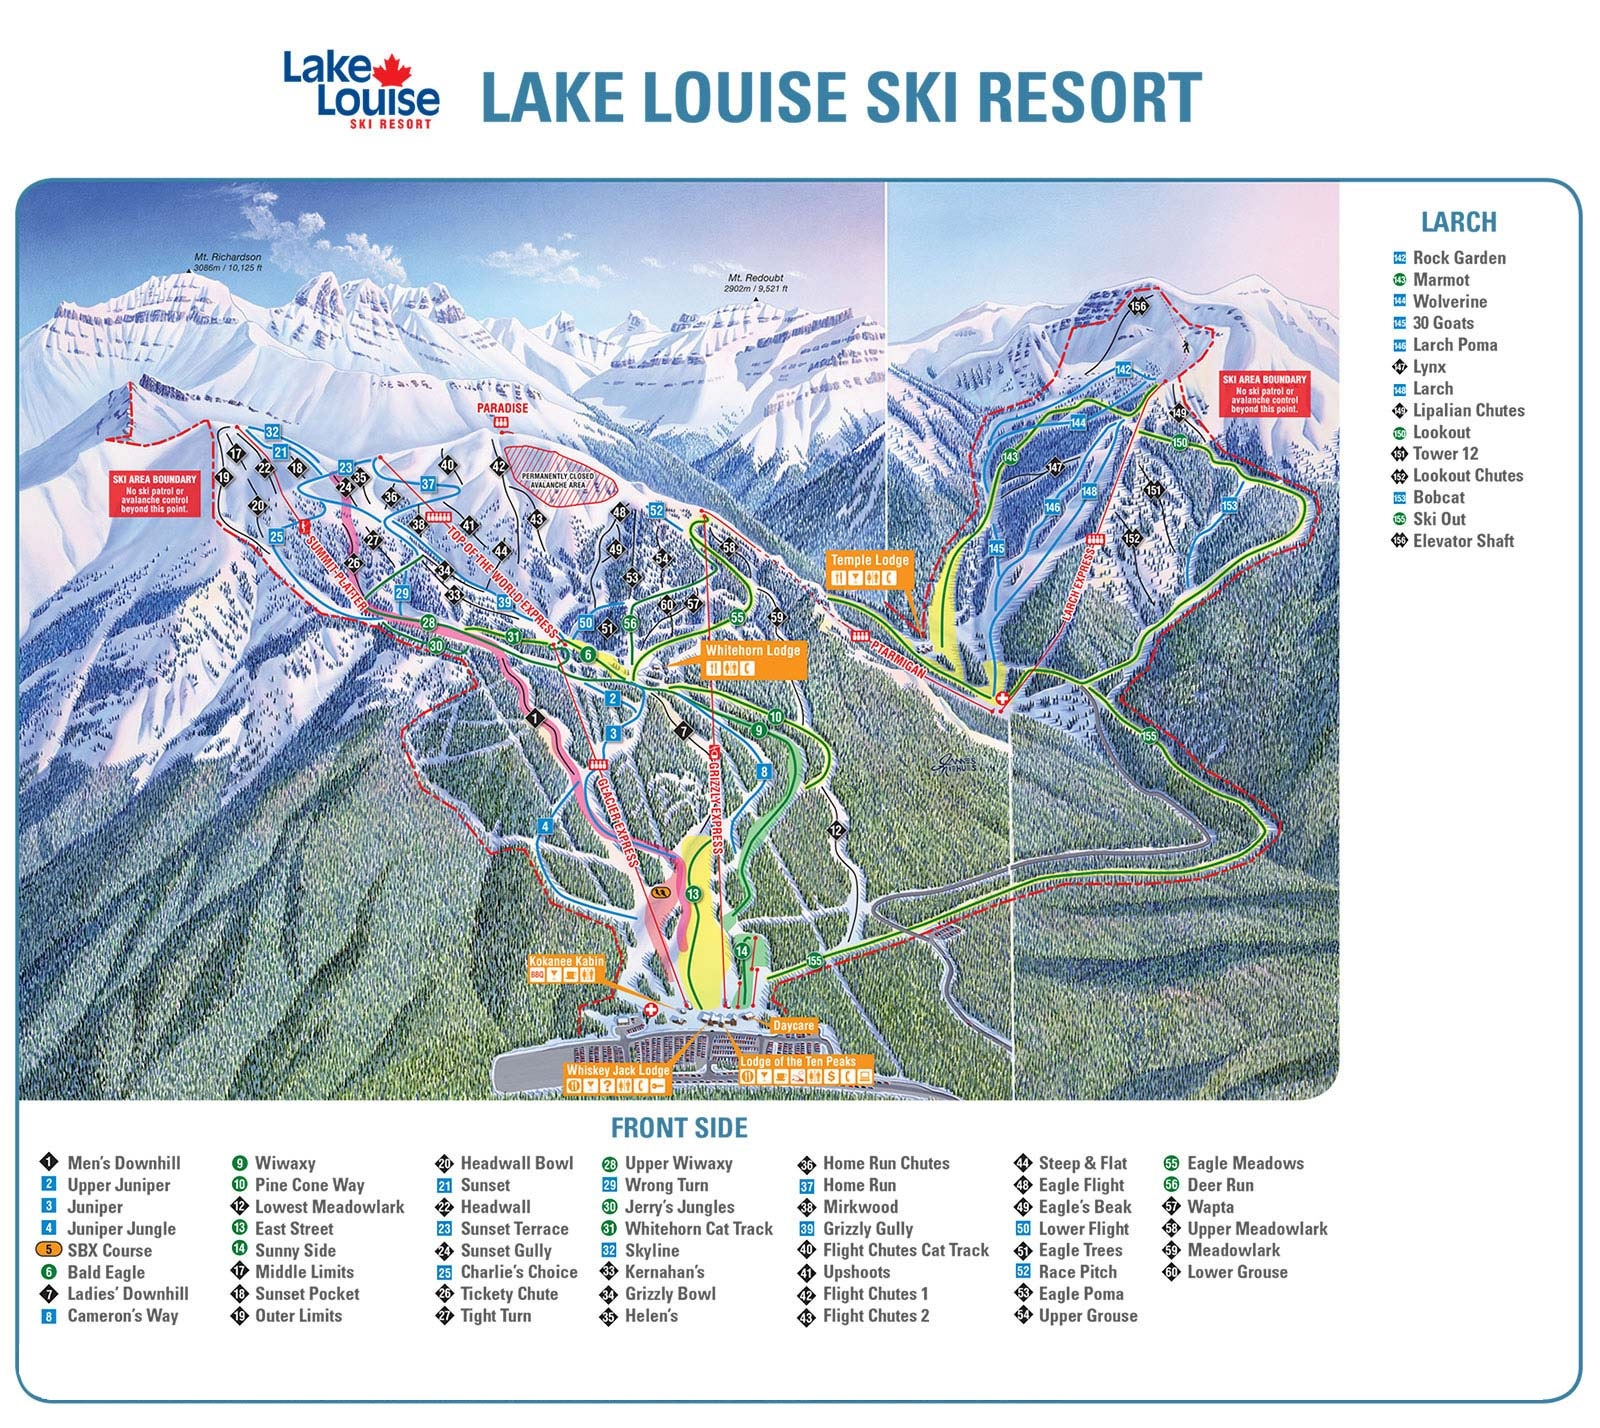 Banff Ski Packages Banff Lodging Deals SkiSync - Western us ski resorts map